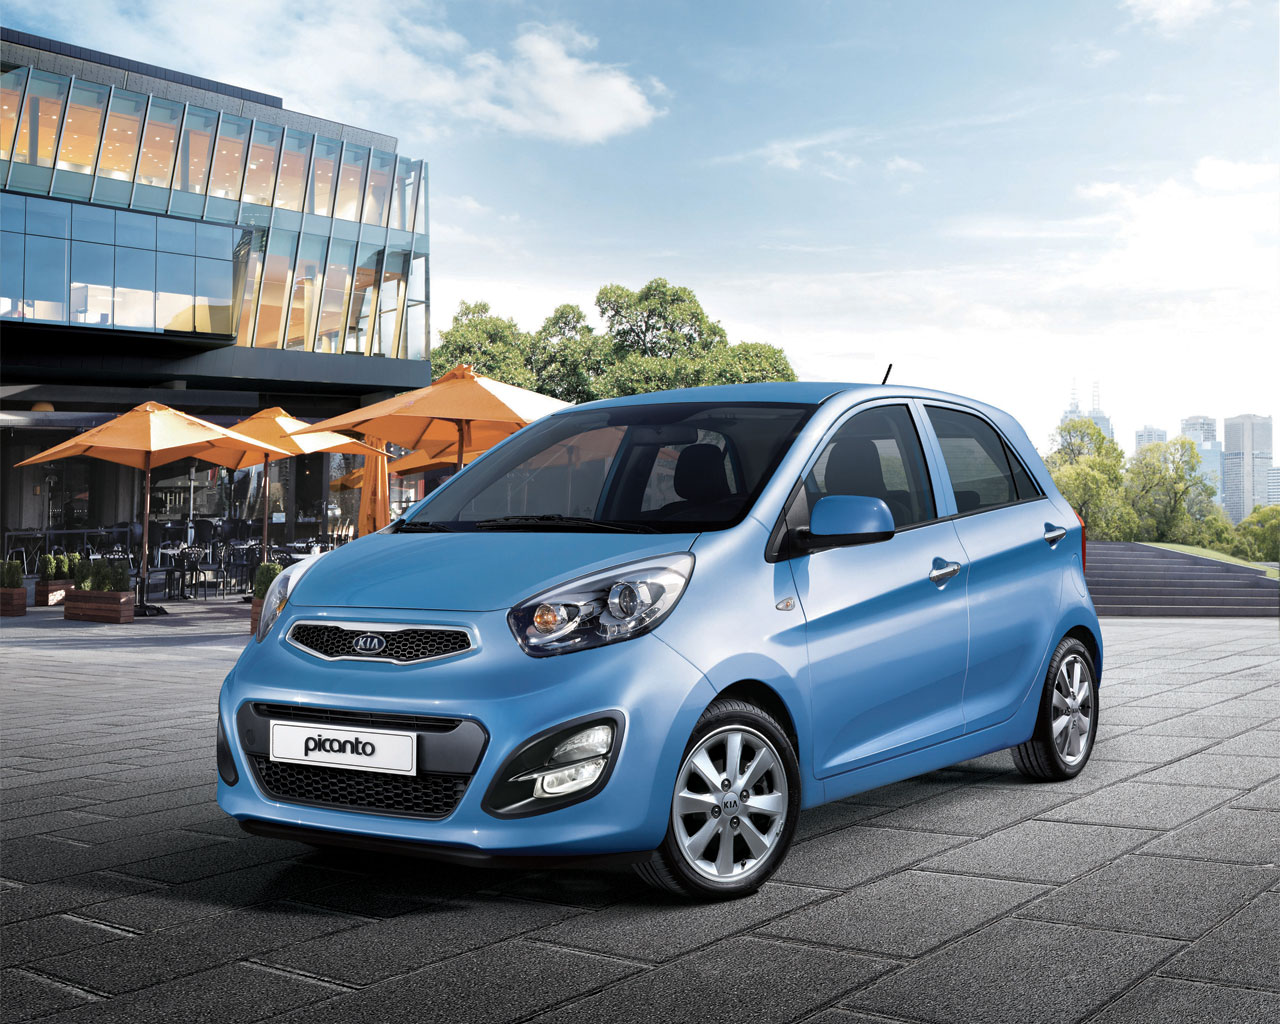 The Kia Picanto has arrived at Col Crawford Kia Dealership Sydney.